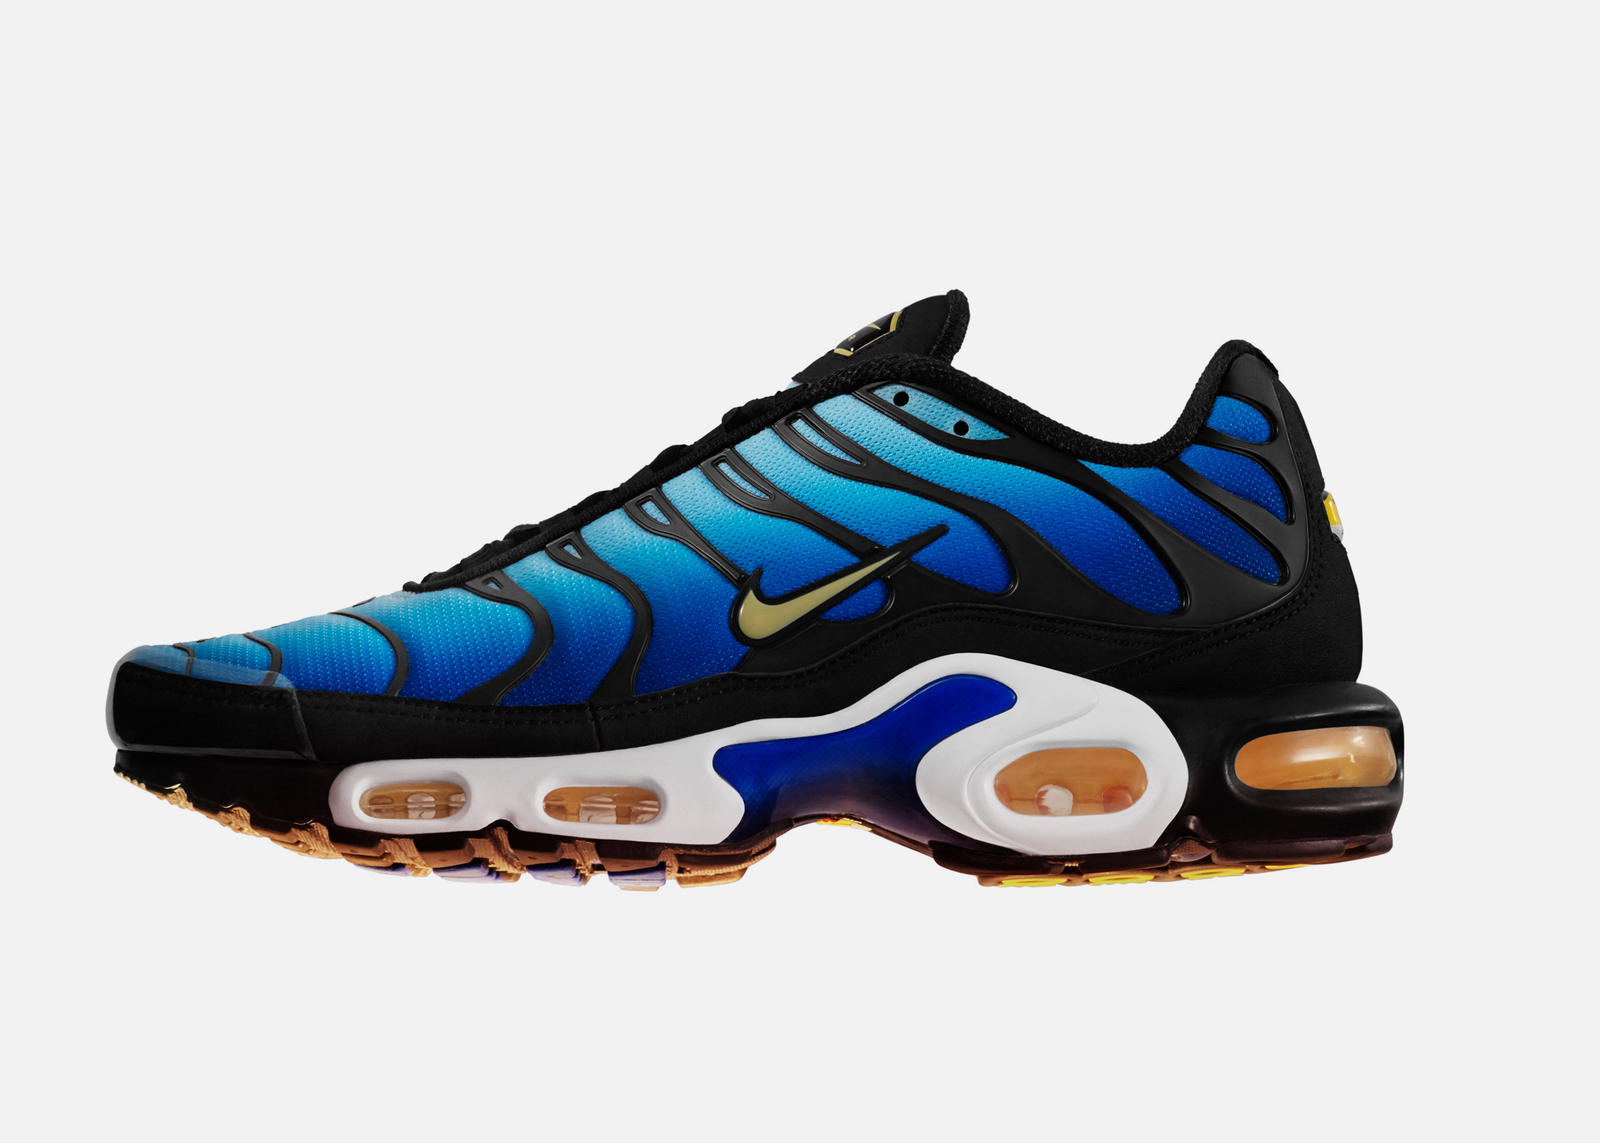 nike air max plus tn history nike news. Black Bedroom Furniture Sets. Home Design Ideas